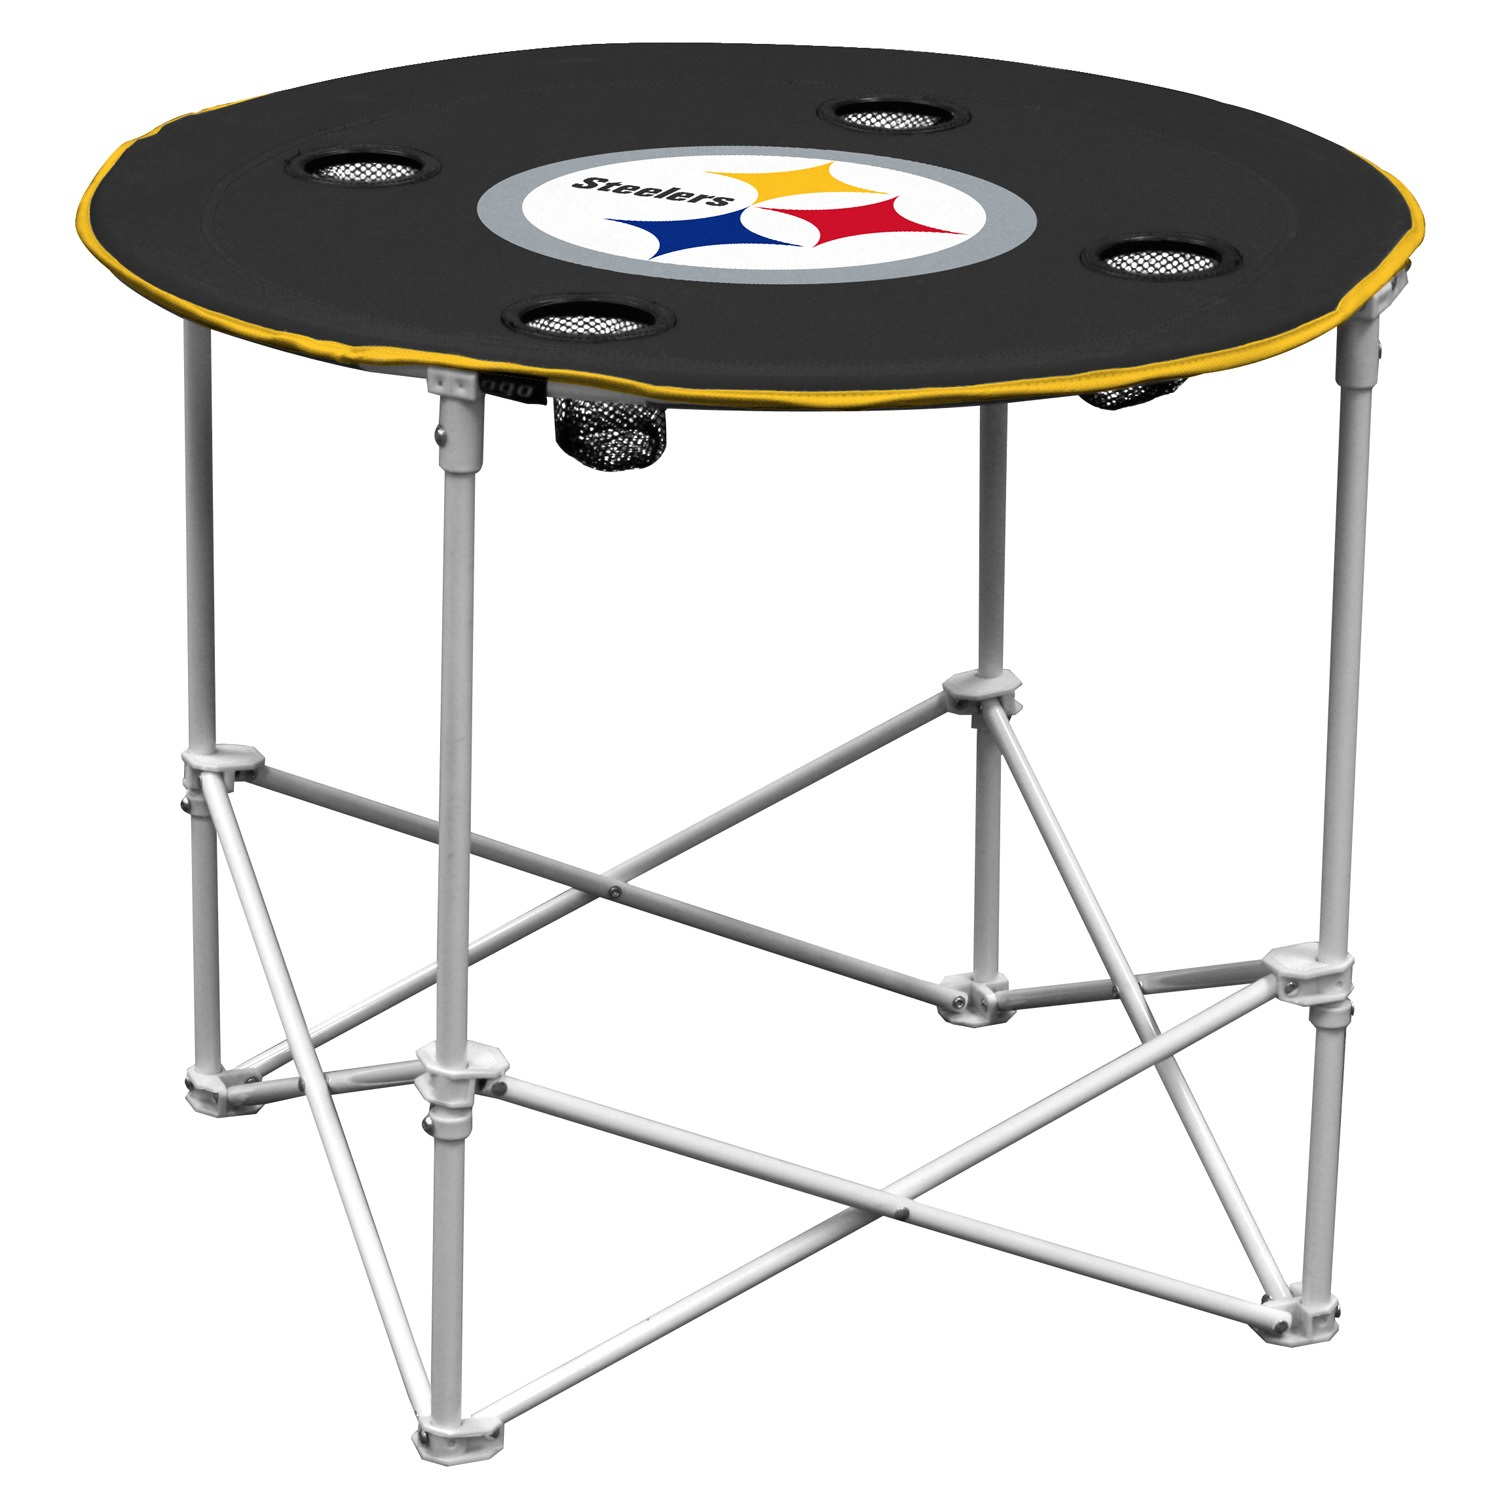 Pittsburgh Steelers Chair Logo Chair Pittsburgh Steelers Round Table